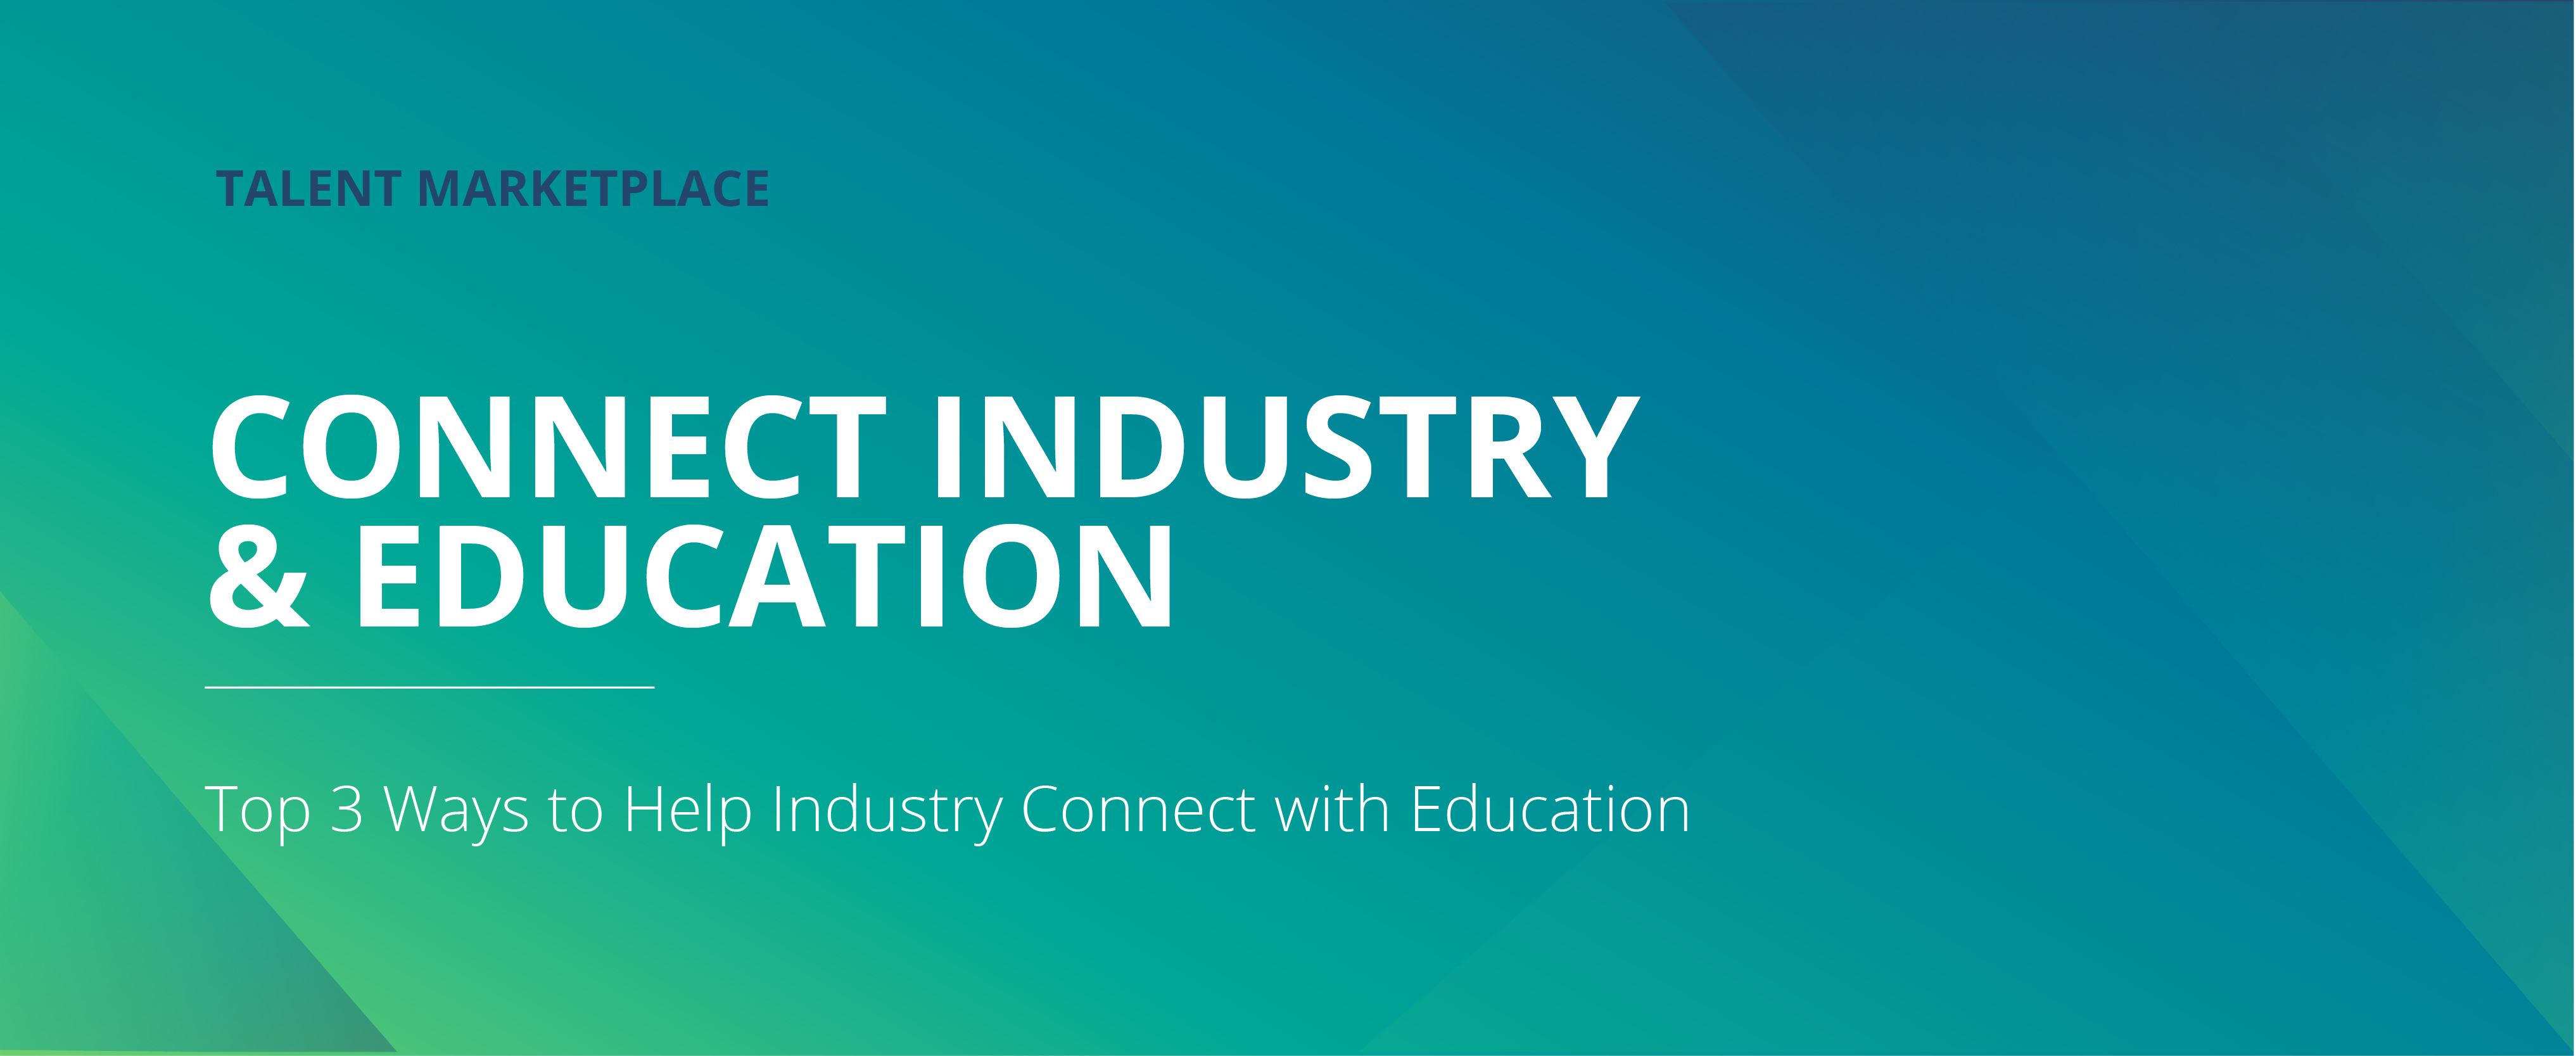 Top 3 Ways to Help Industry Connect with Education